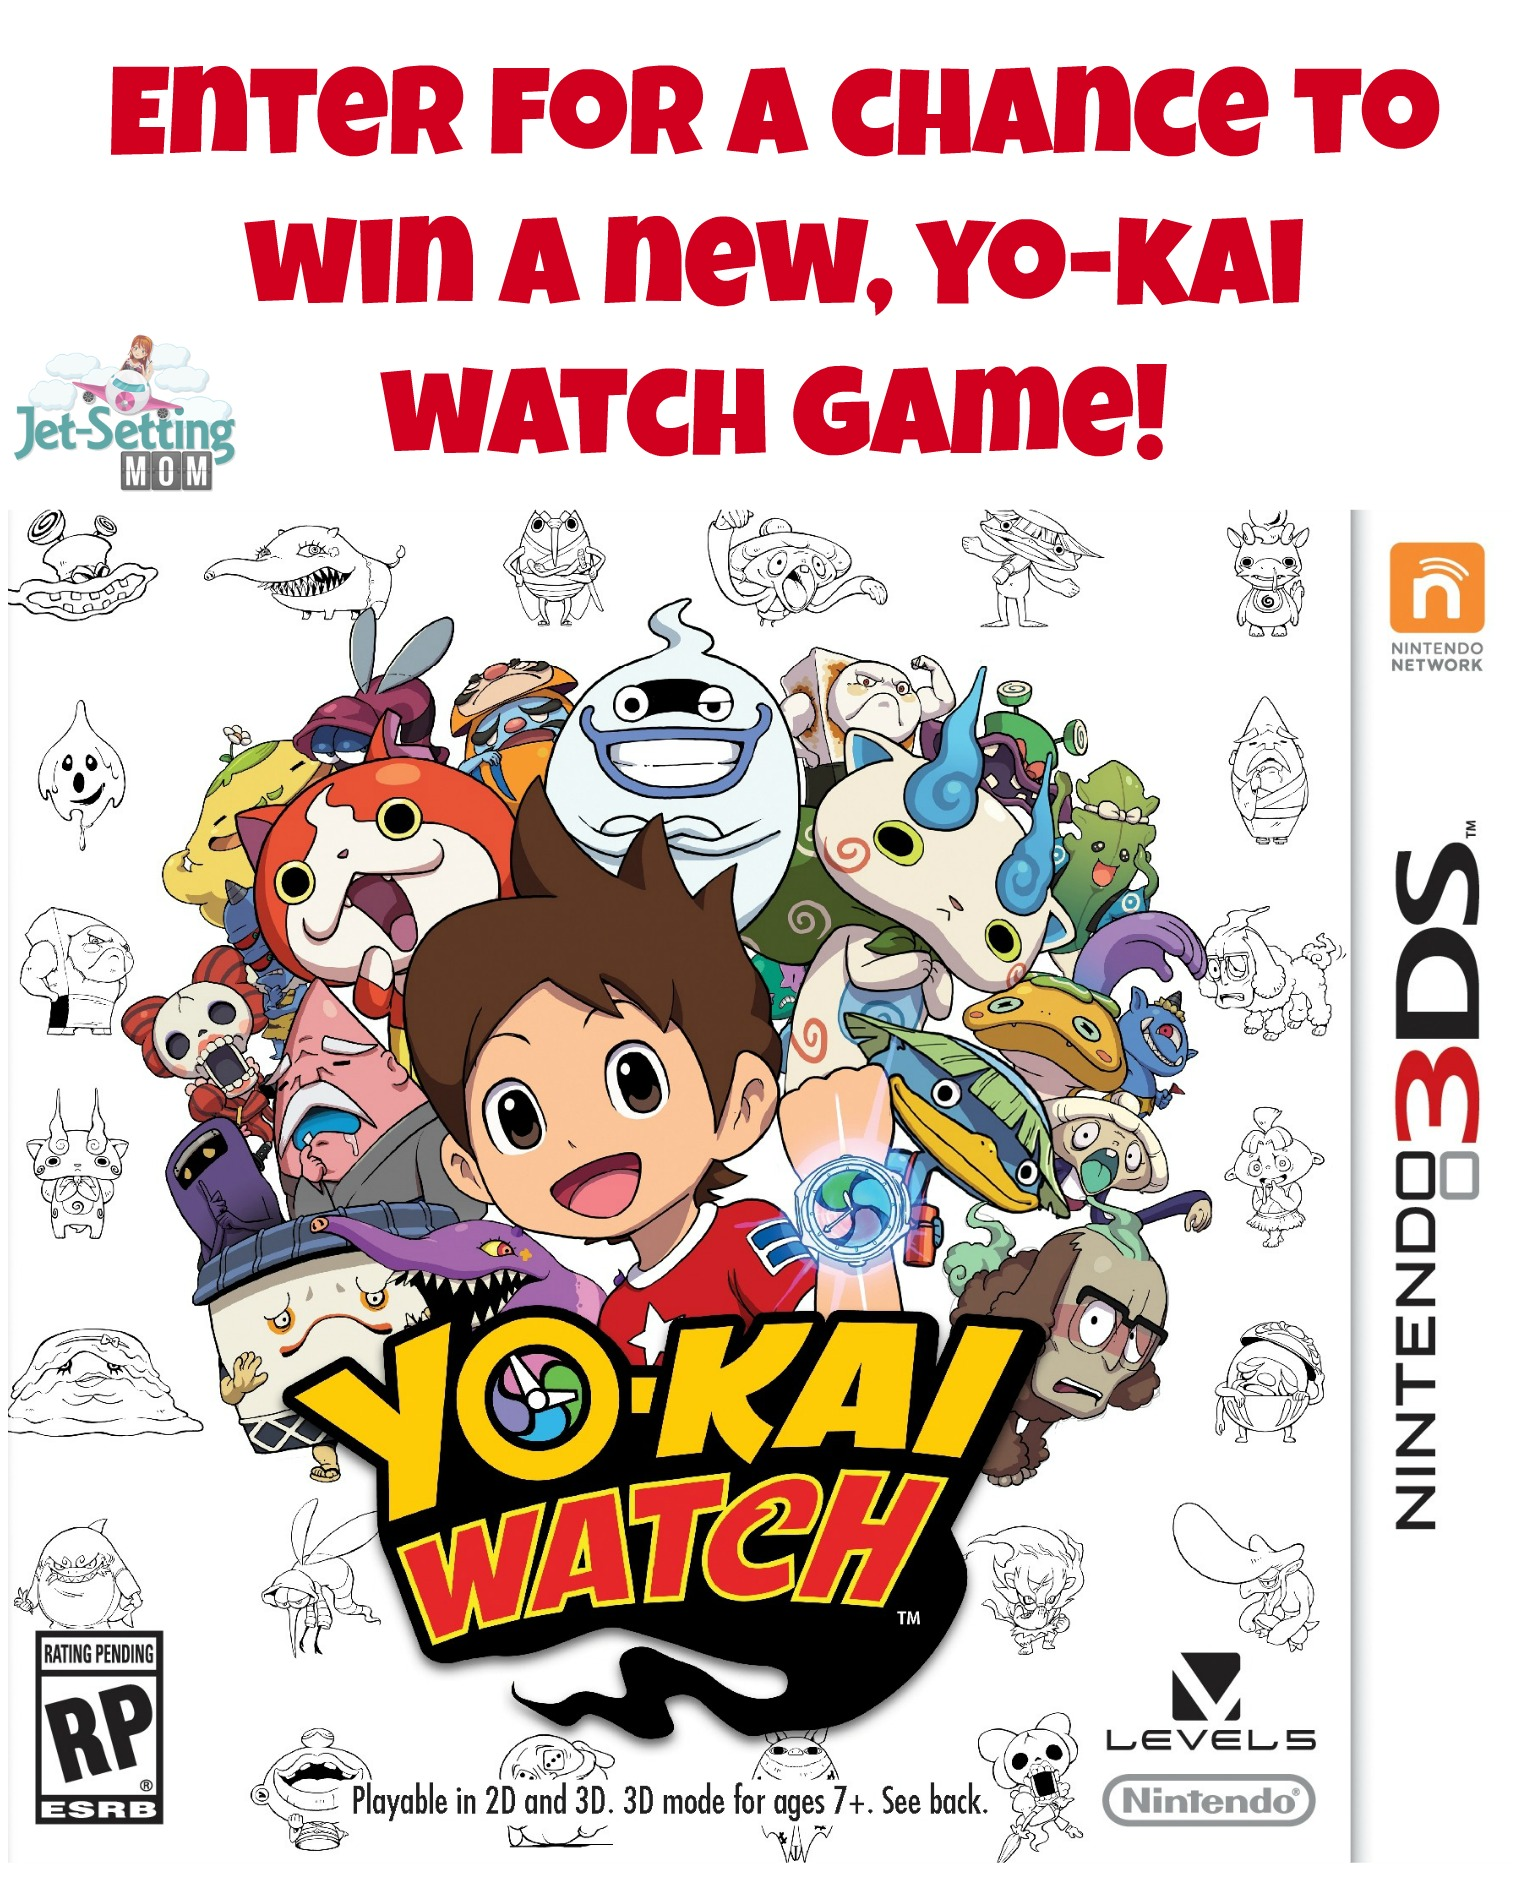 Enter for a chance to win a new Yo-Kai Watch video game ! #IC #YoKaiWatch #ad #giveaway #gamer #videogame